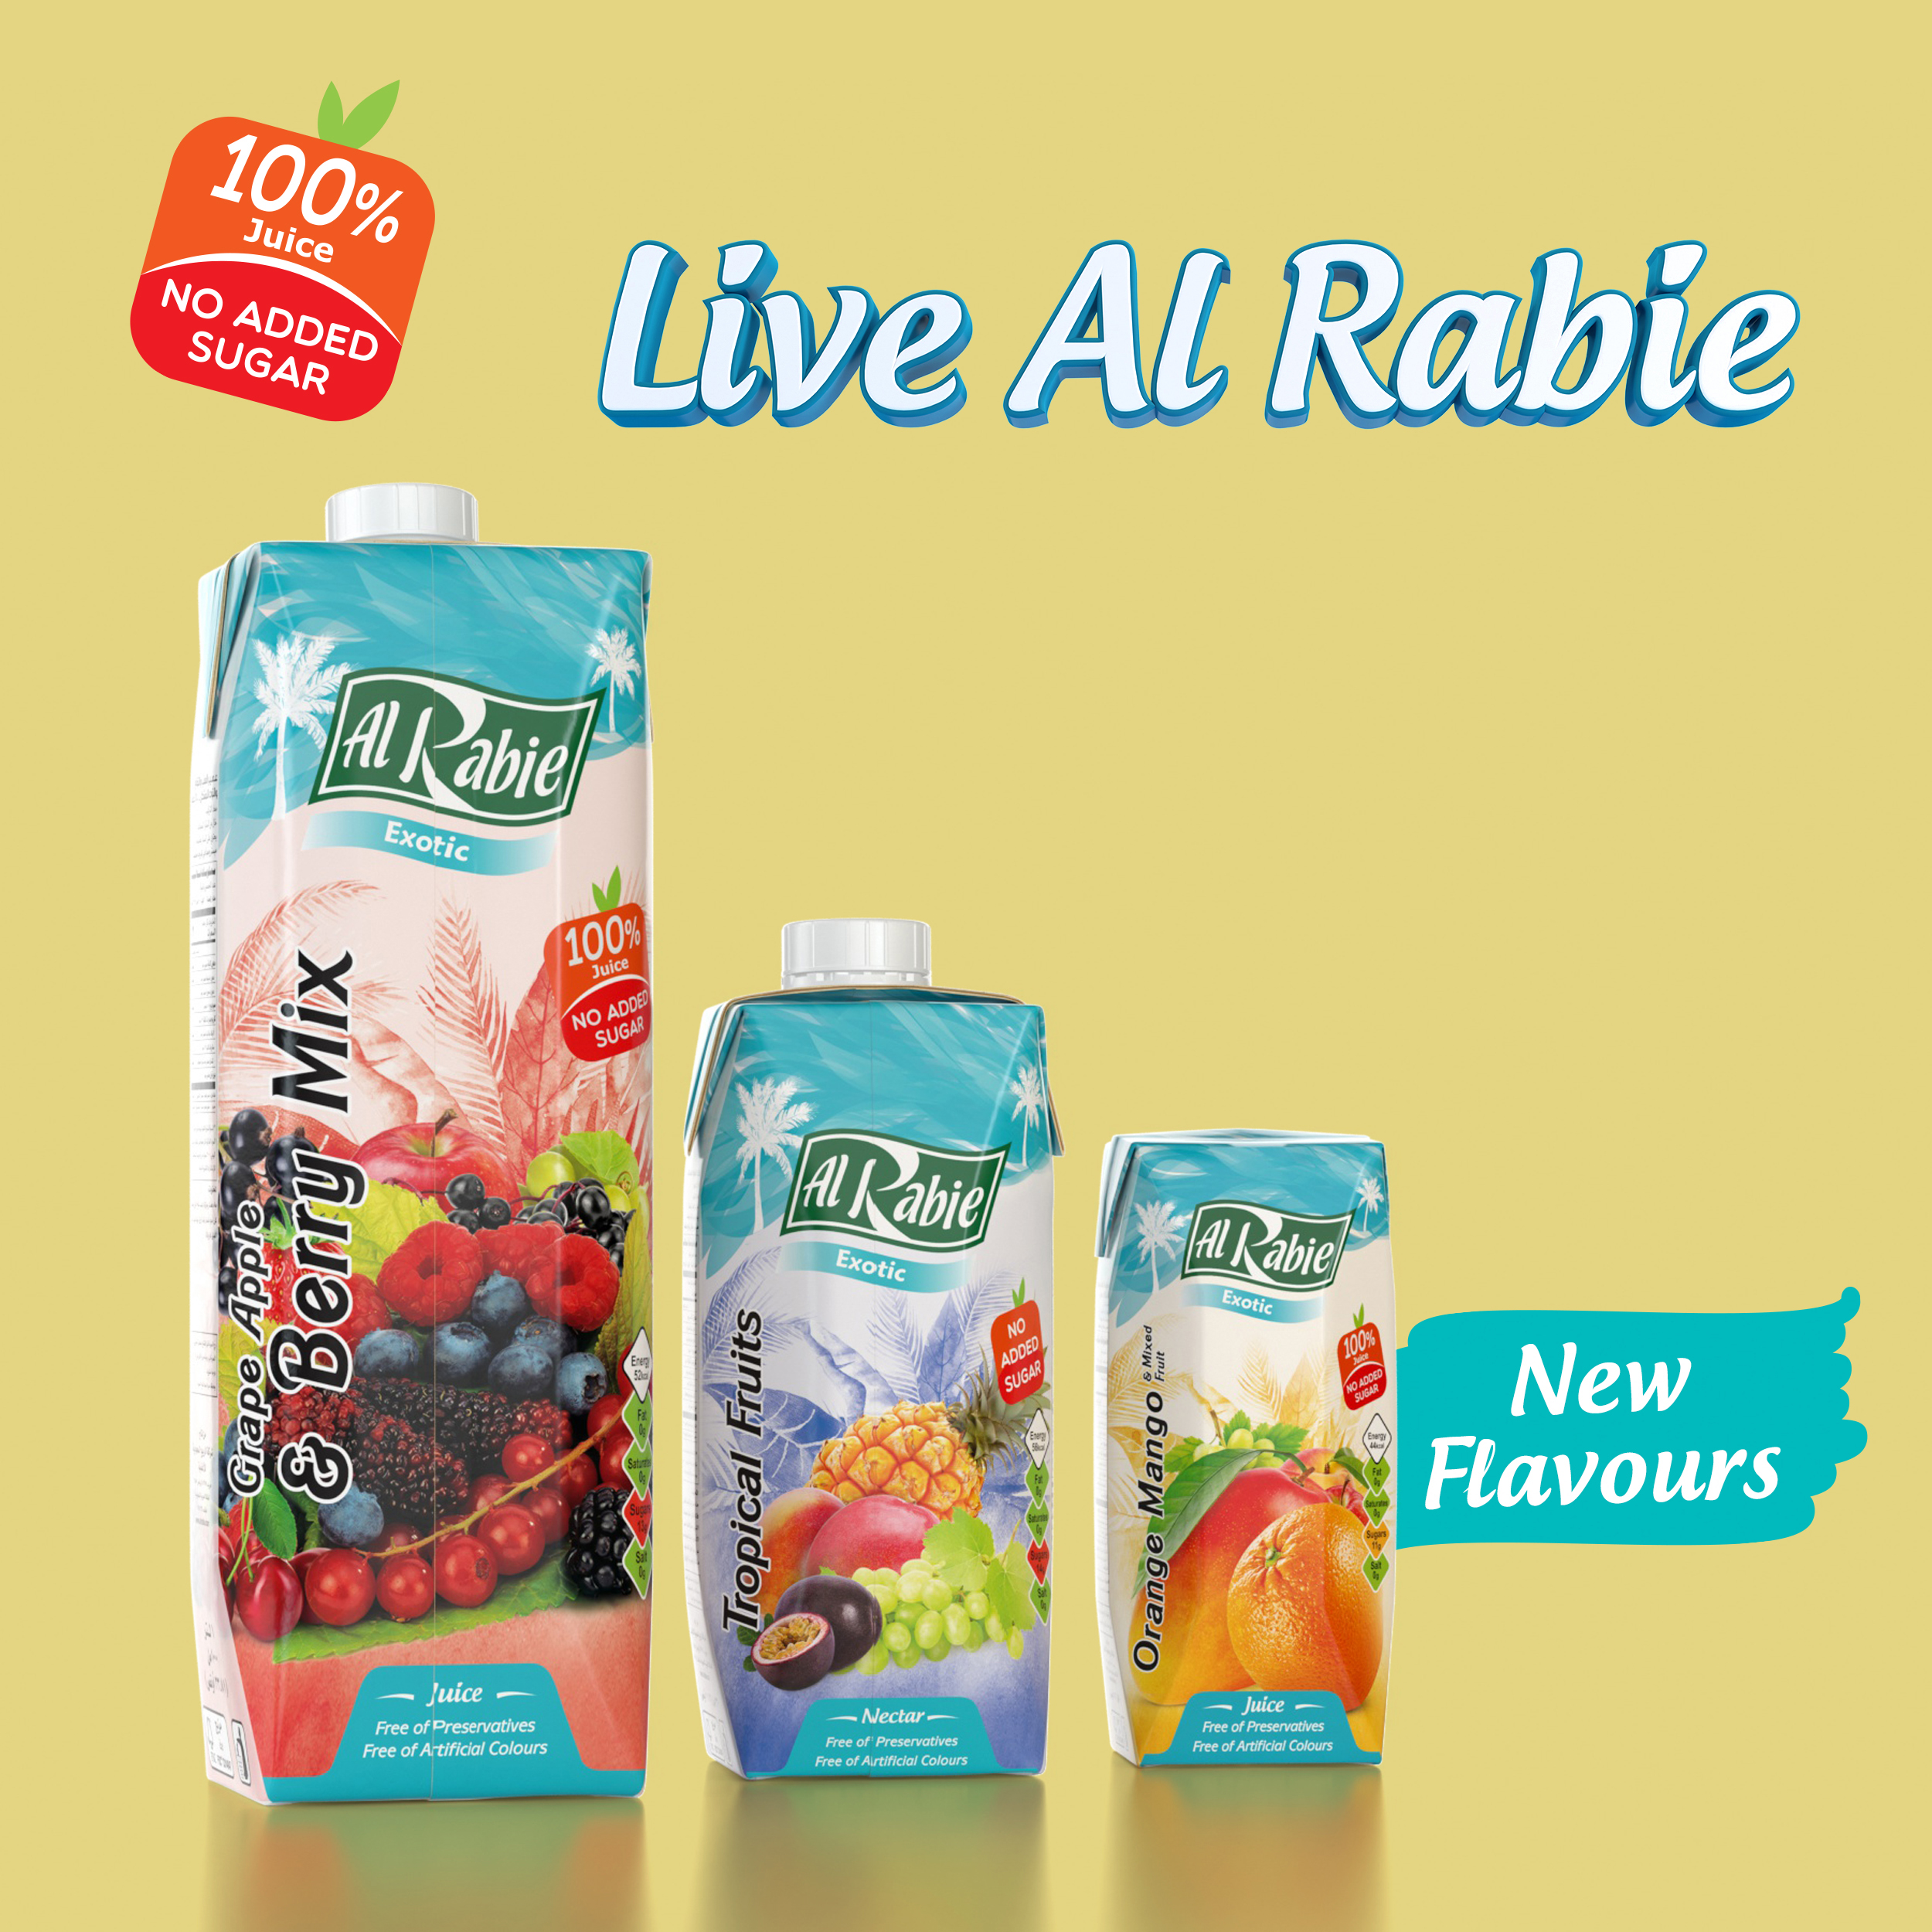 Live Al Rabie!   New face for an amazing great taste….            100% No Added Sugar!